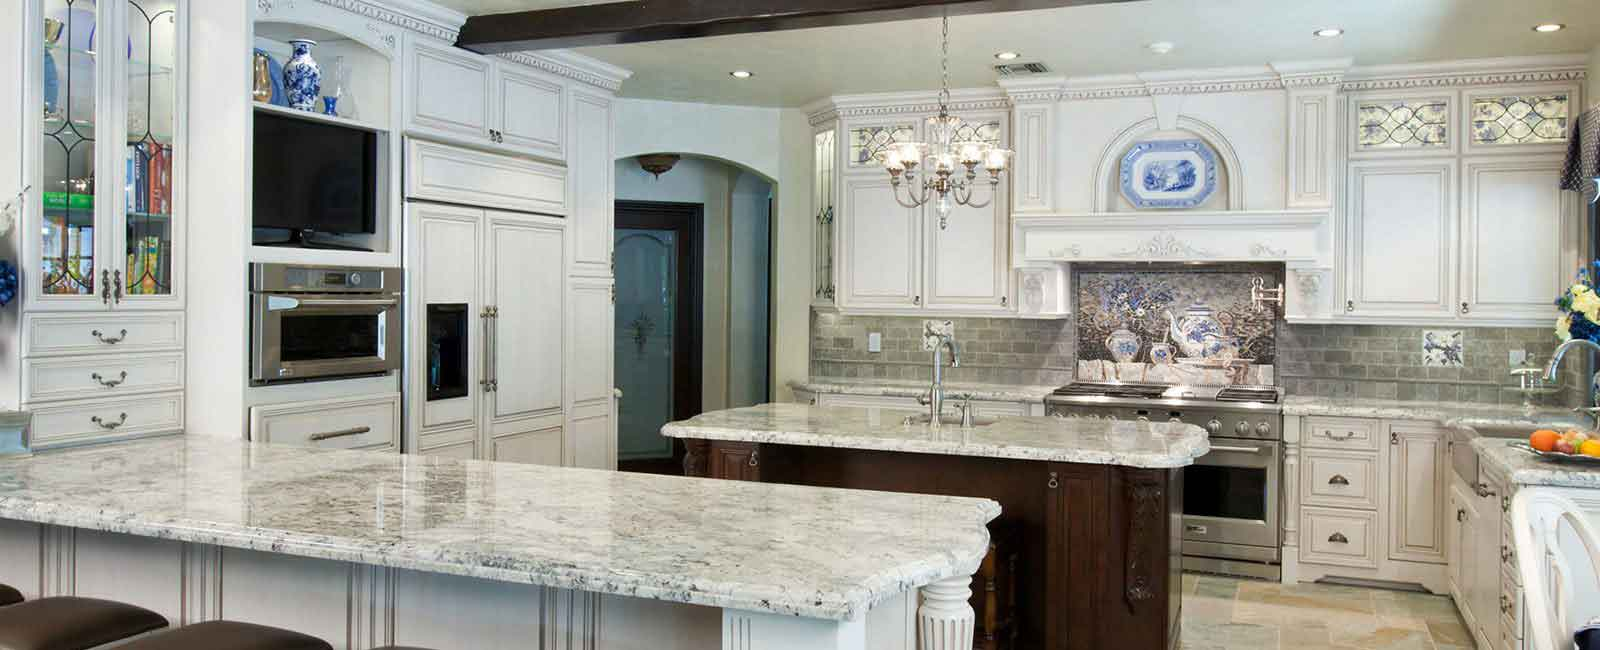 Custom Kitchen Remodeling In Santa Monica CA